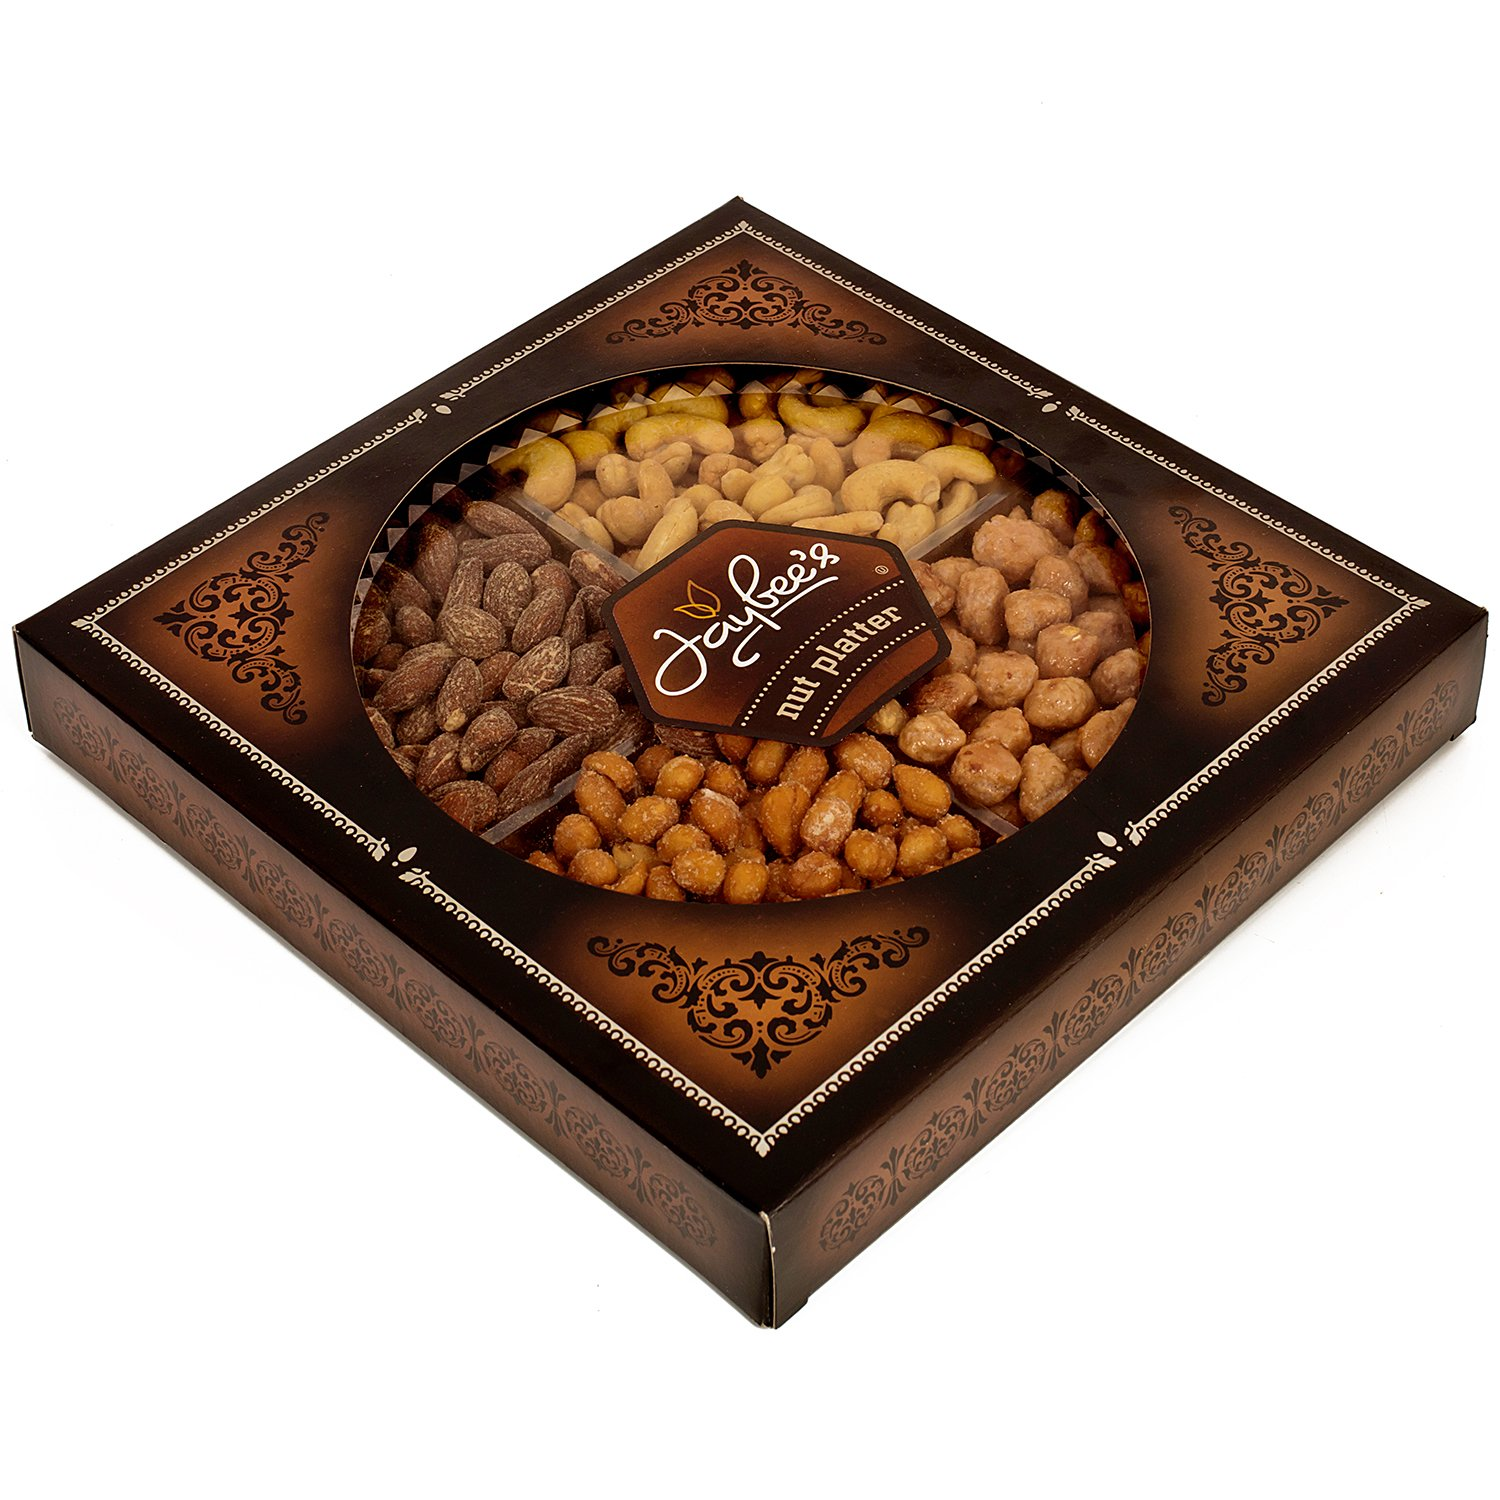 Jaybee's Nuts Gift Tray - Great Holiday, Corporate, Birthday Gift, or as Everyday Healthy Snack - Cashews, Smoked Almonds, Toffee & Honey Roasted Peanuts, Vegetarian Friendly and Kosher by Jaybee's (Image #1)